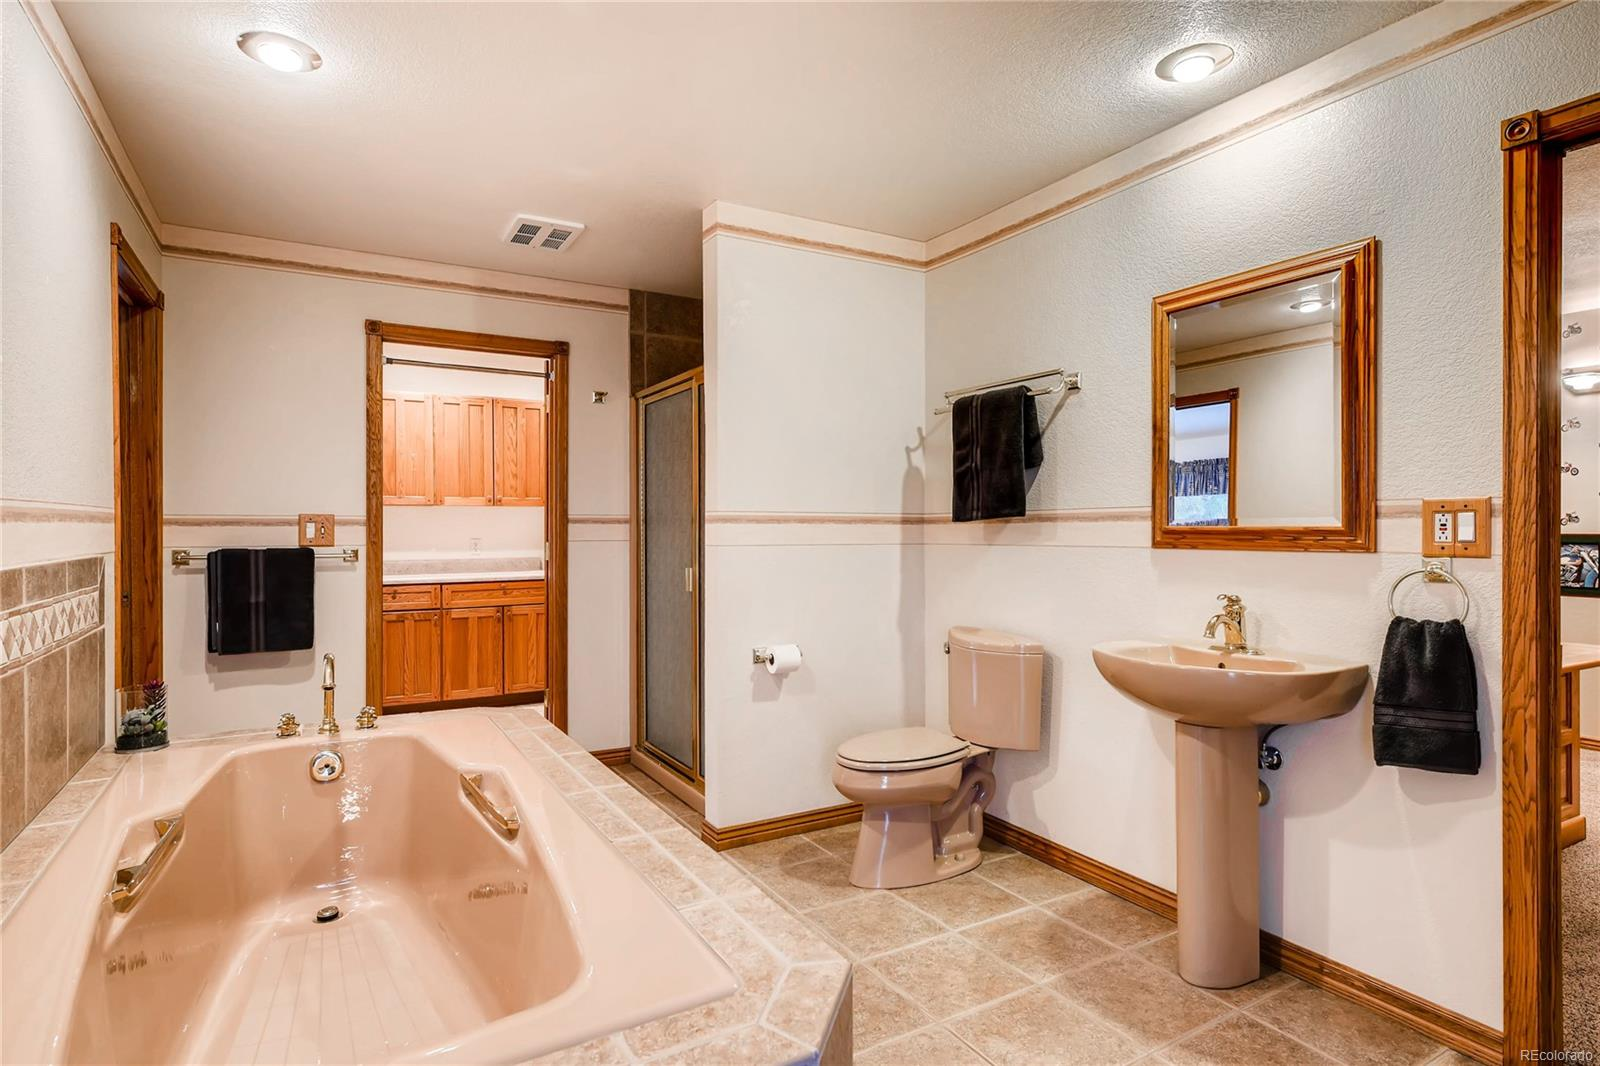 Jack and Jill Bathroom for Bedrooms #3 and #4.